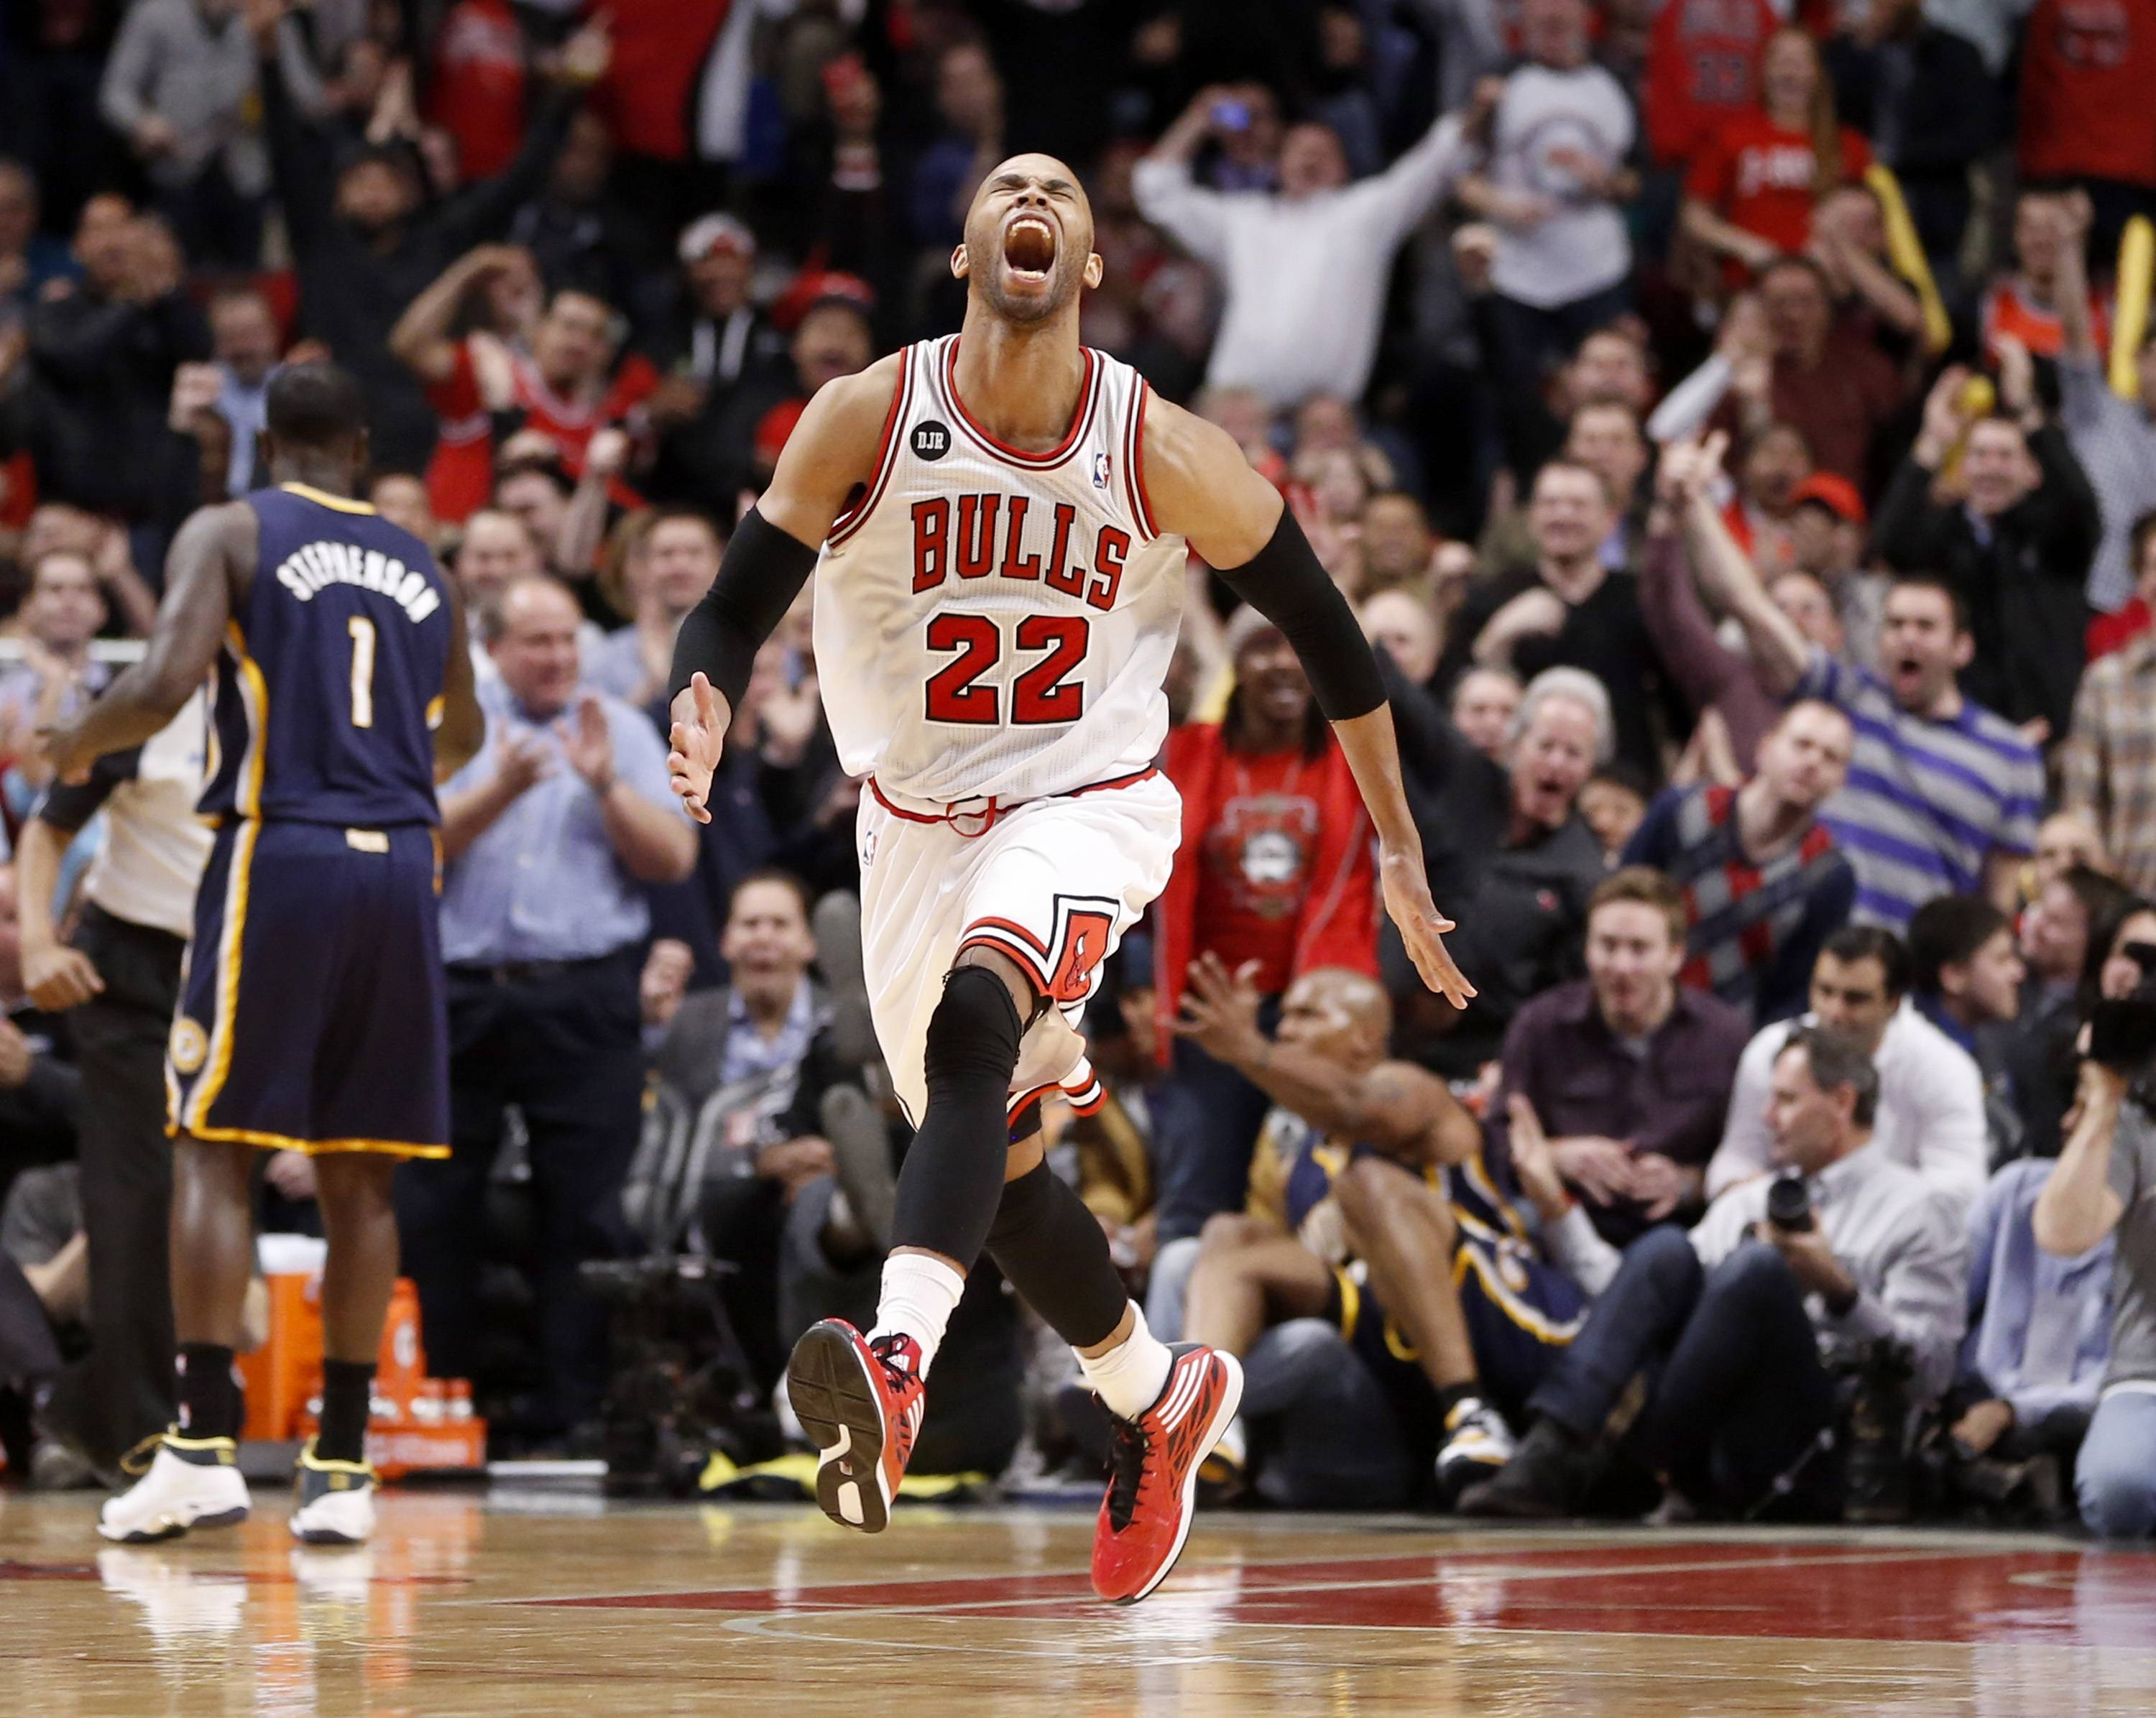 The Bulls' Taj Gibson celebrates after his dunk off a rebound during the second half of Monday night's victory over the Pacers.